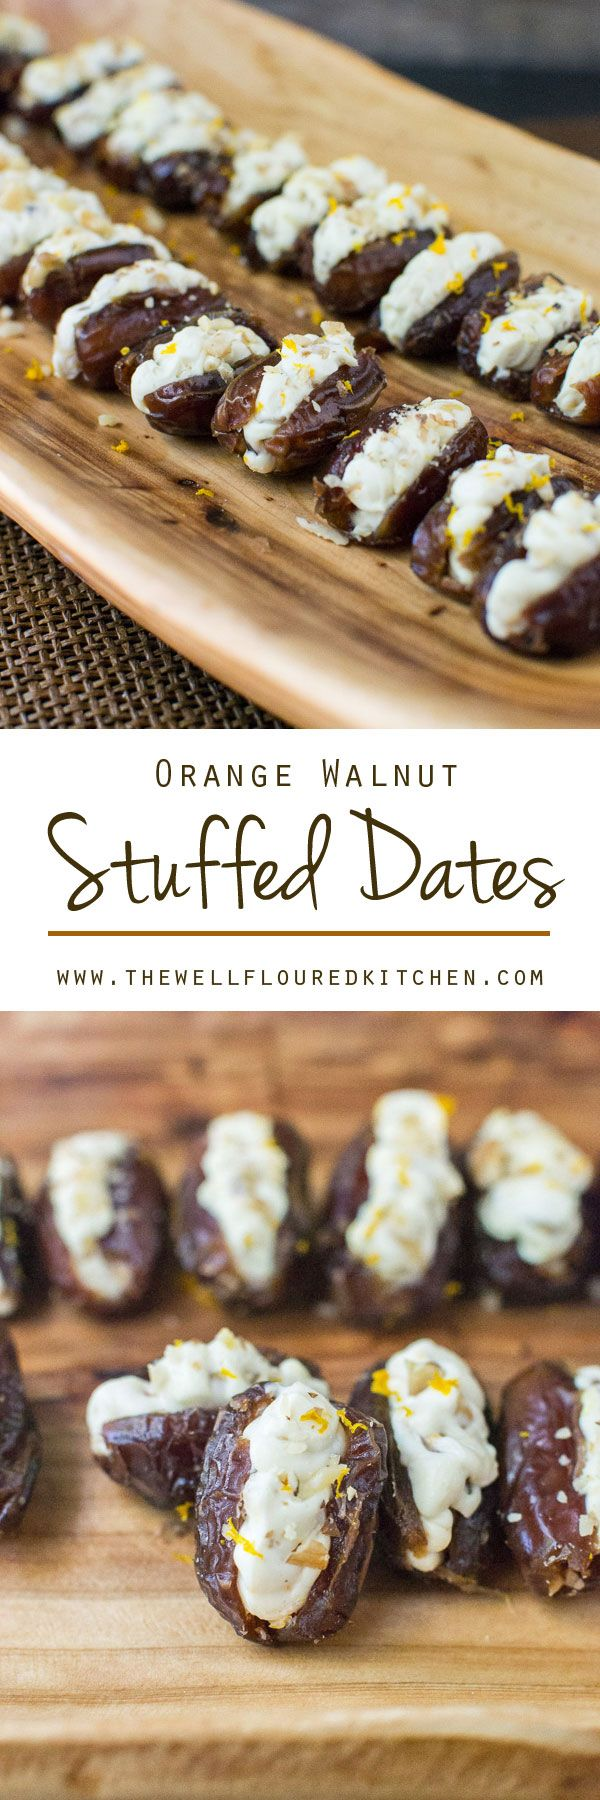 Dates stuffed with a lightly sweetened orange and honey cream cheese. Crunchy toasted walnuts make the perfect topping for this easy snack!